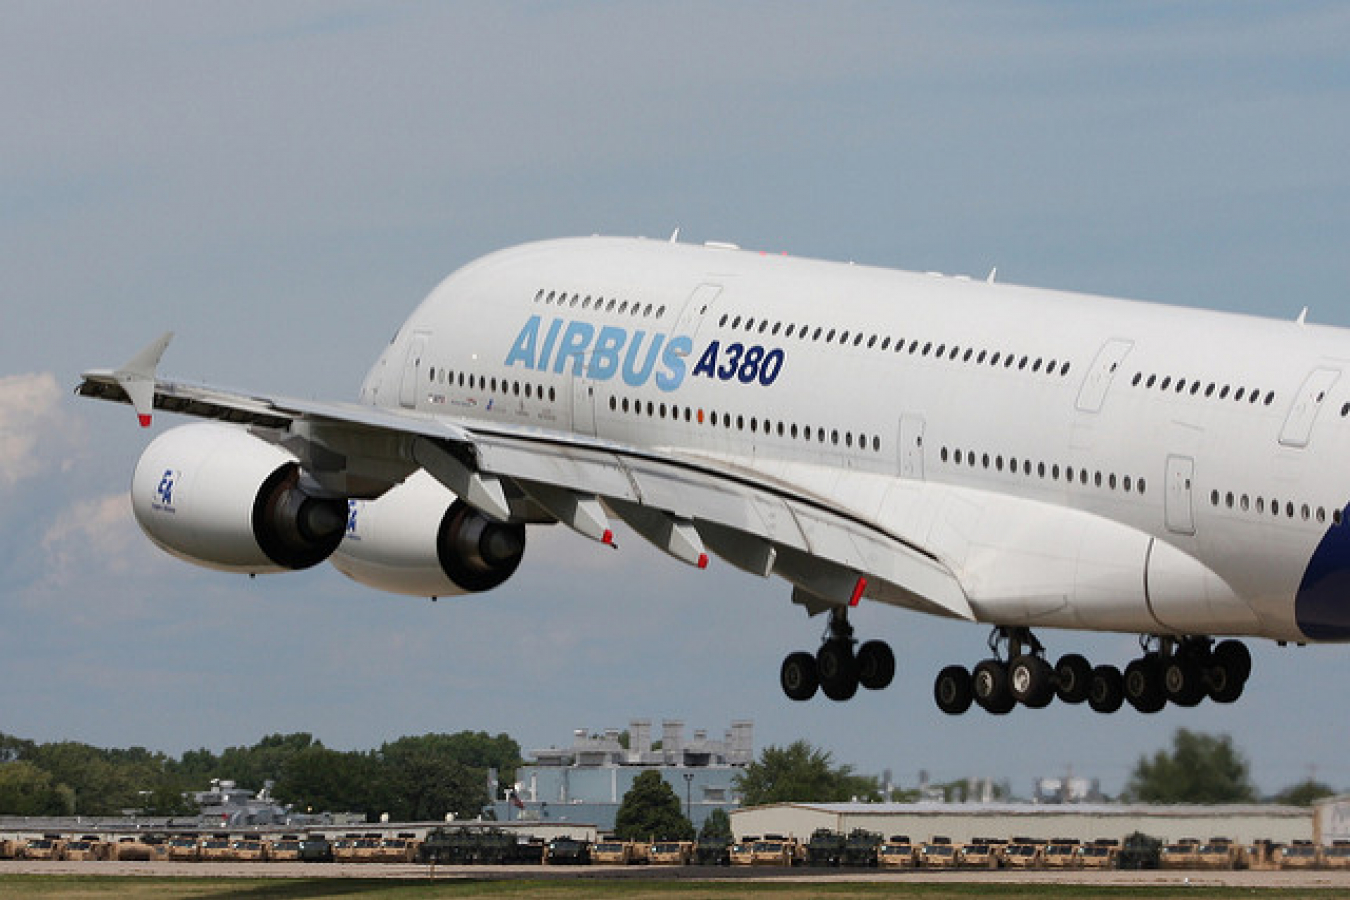 European made Airbus A380 the biggest passenger aircraft in the World